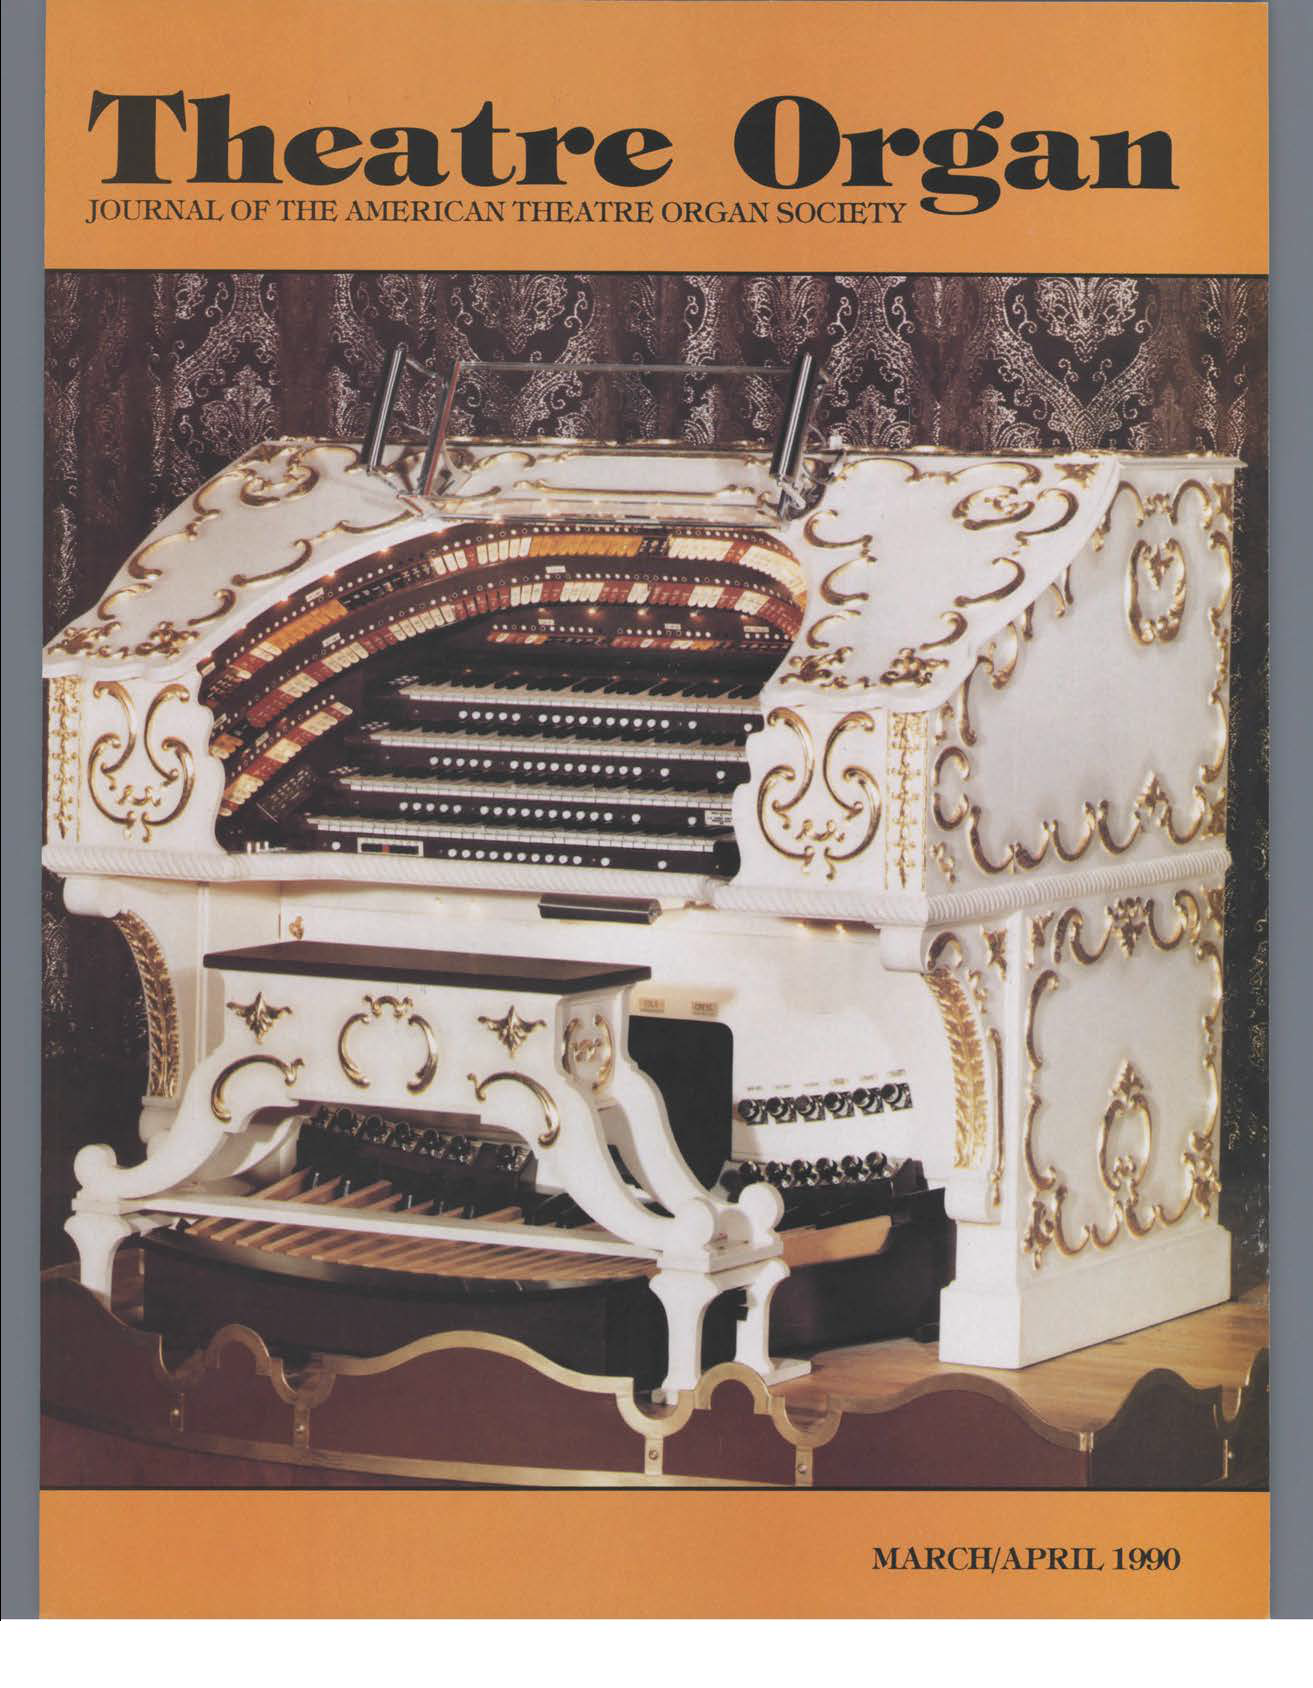 Theatre Organ, March - April 1990, Volume 32, Number 2